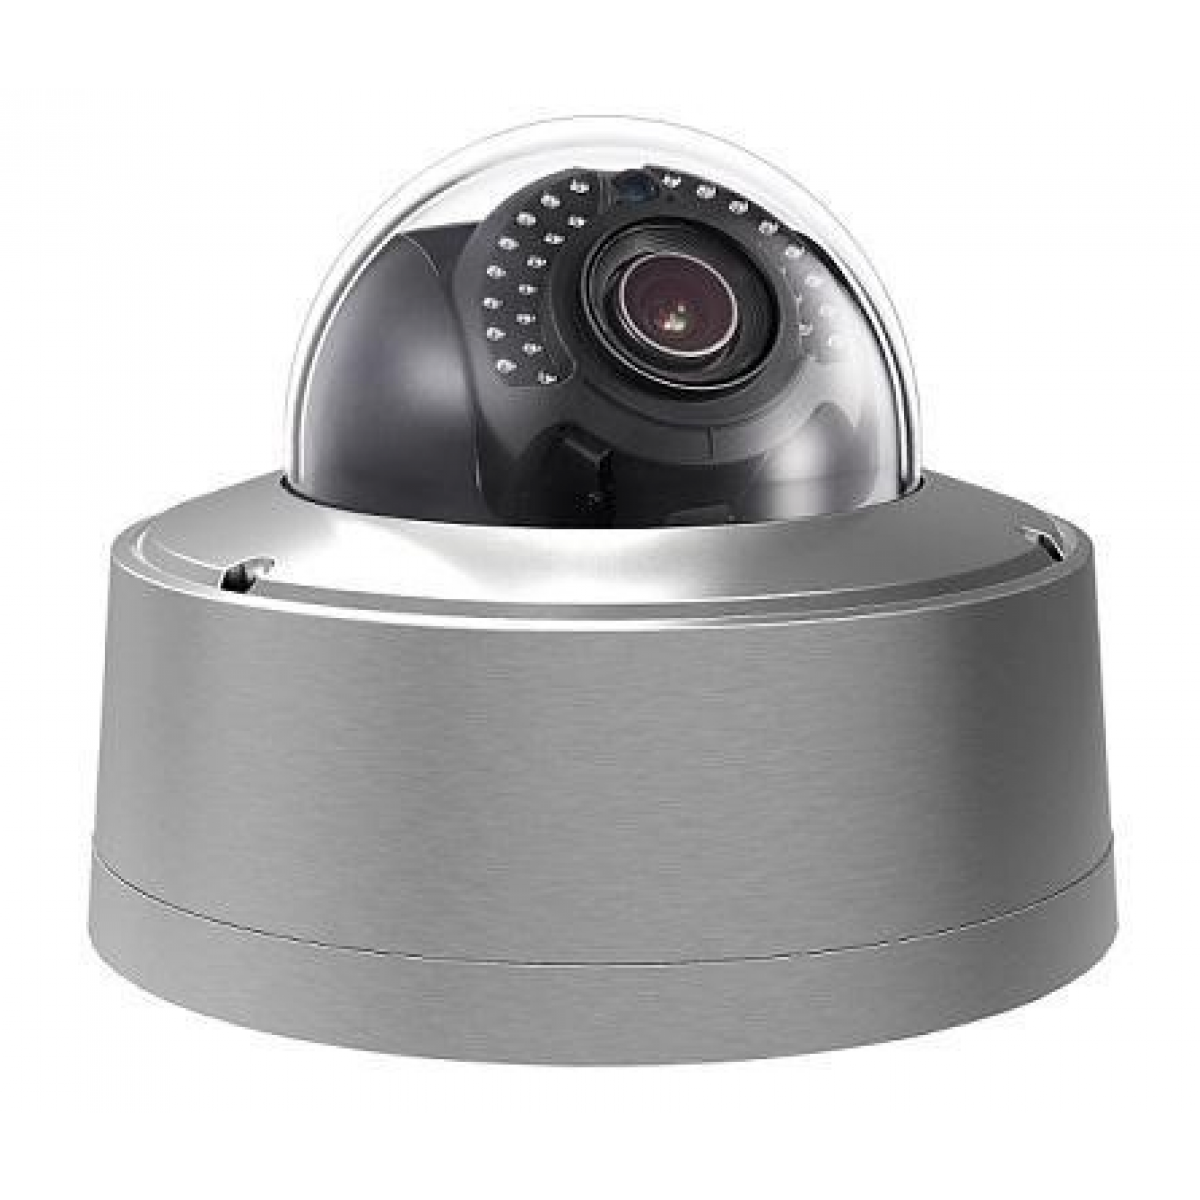 HIKVISION DS-2CD6626DS-IZHS Security Camera: 2MP ANTI-CORROSION DOME DARKFIGHTER, 2.8-12mm